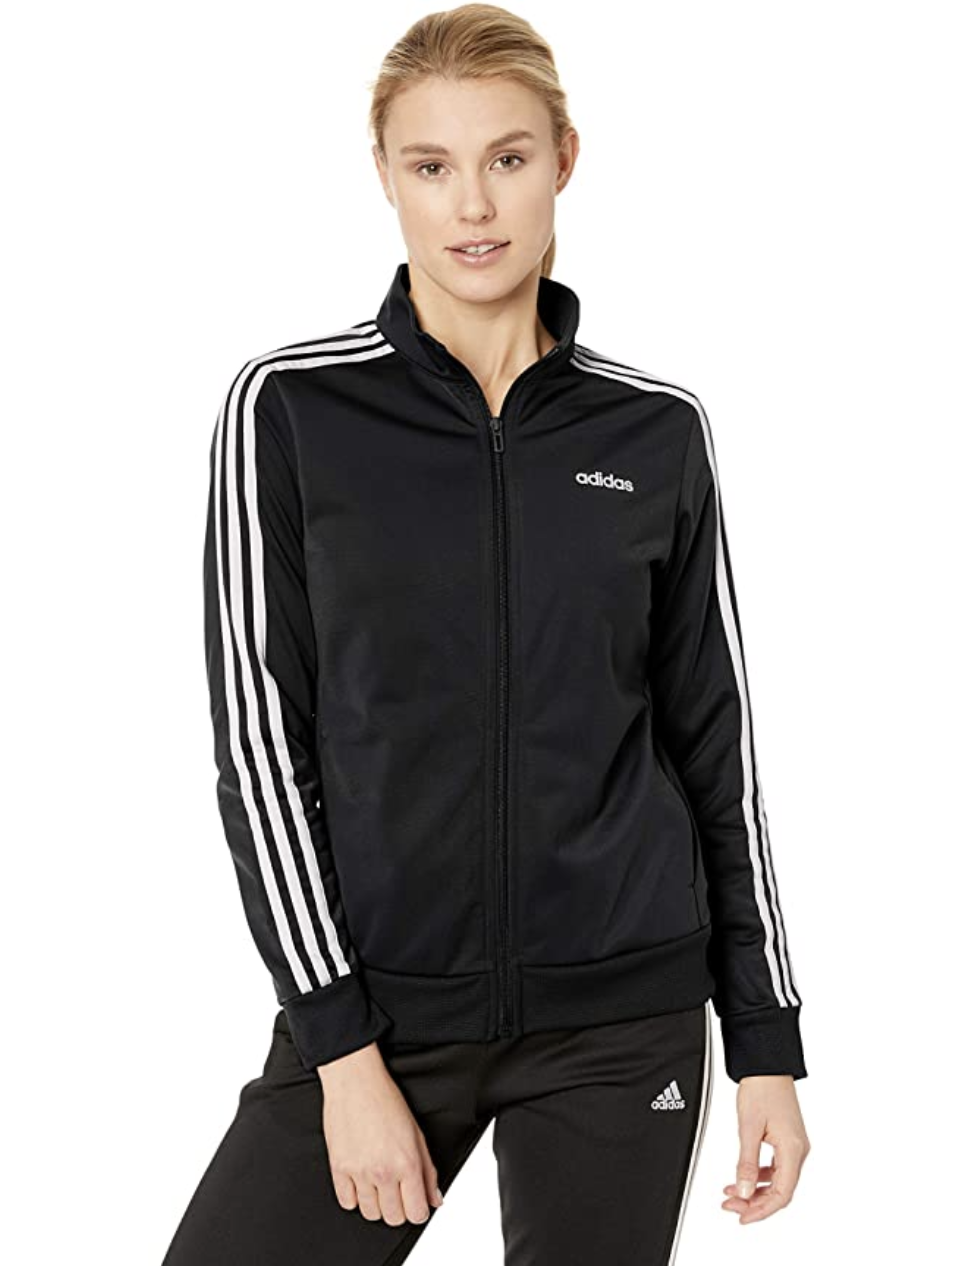 Model in a black zip Adidas track jacket with white strips down the sleeves